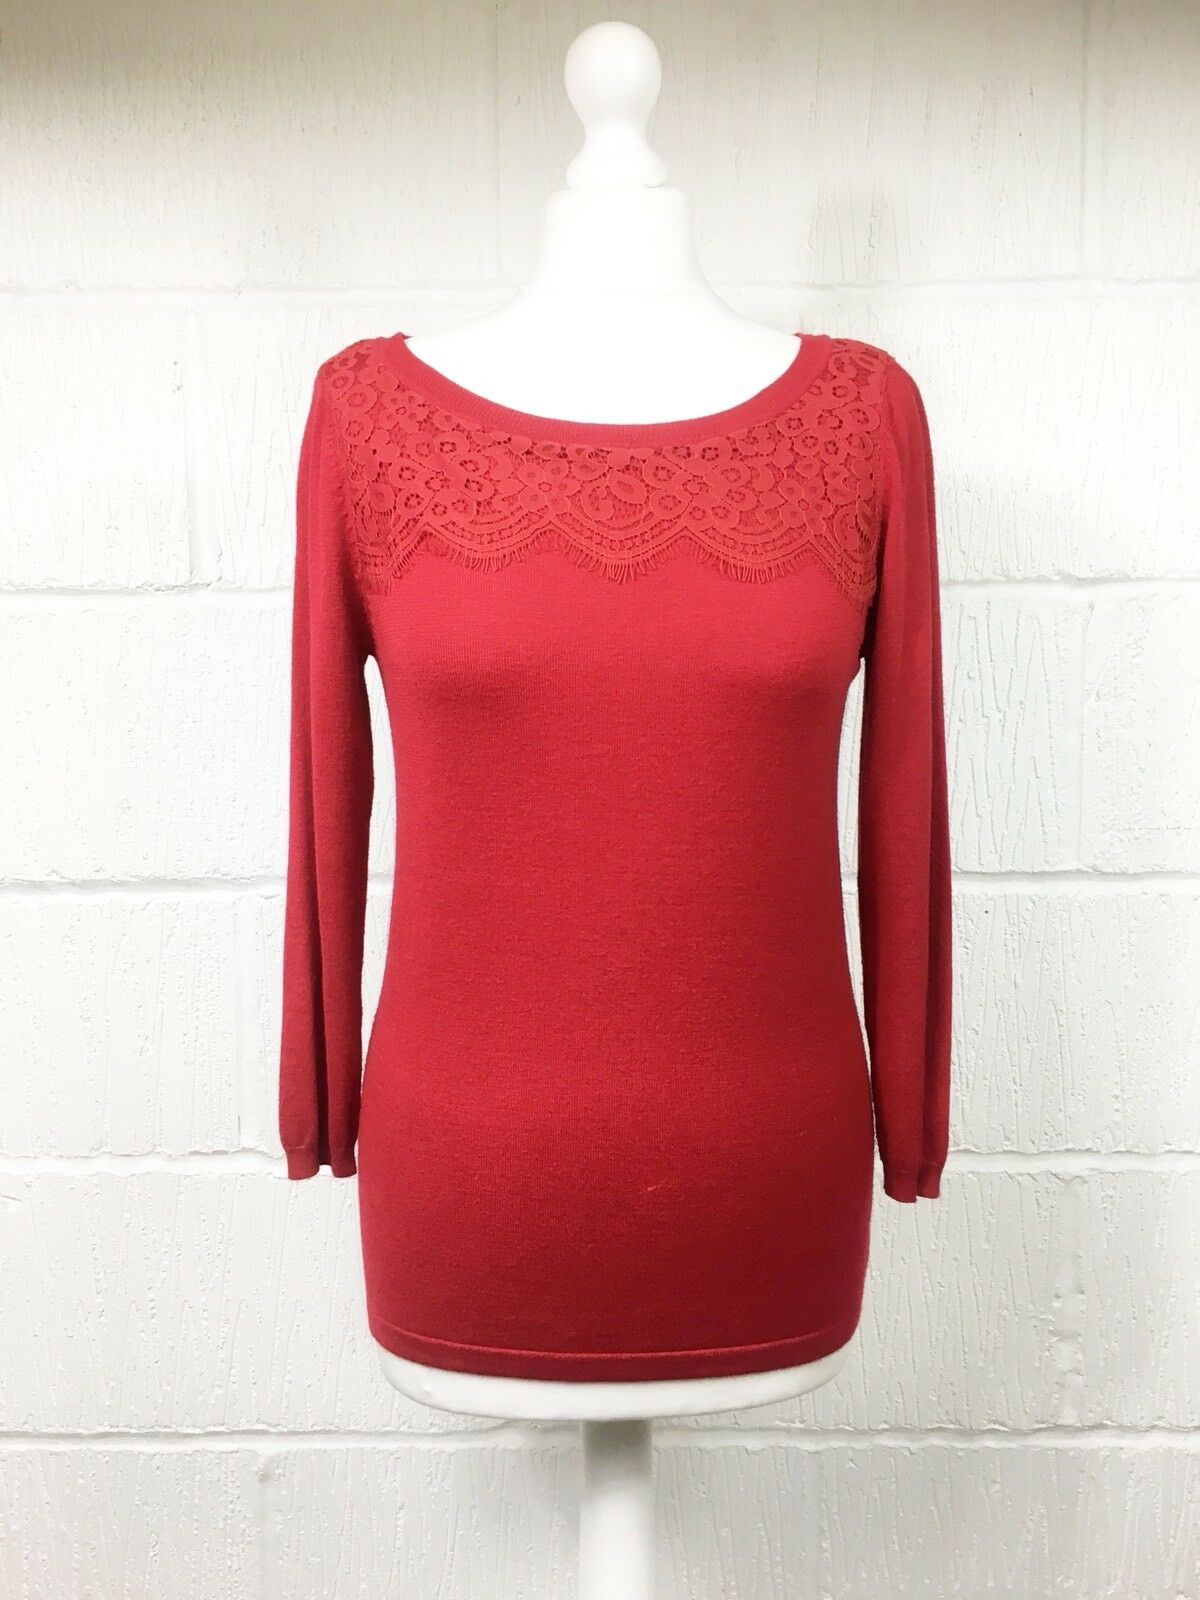 M&s Top Collection Rouge lacy Top M&s Pull Dentelle Skinny Tricot UK8 Marks & Spencer (Bh) 5d2a06